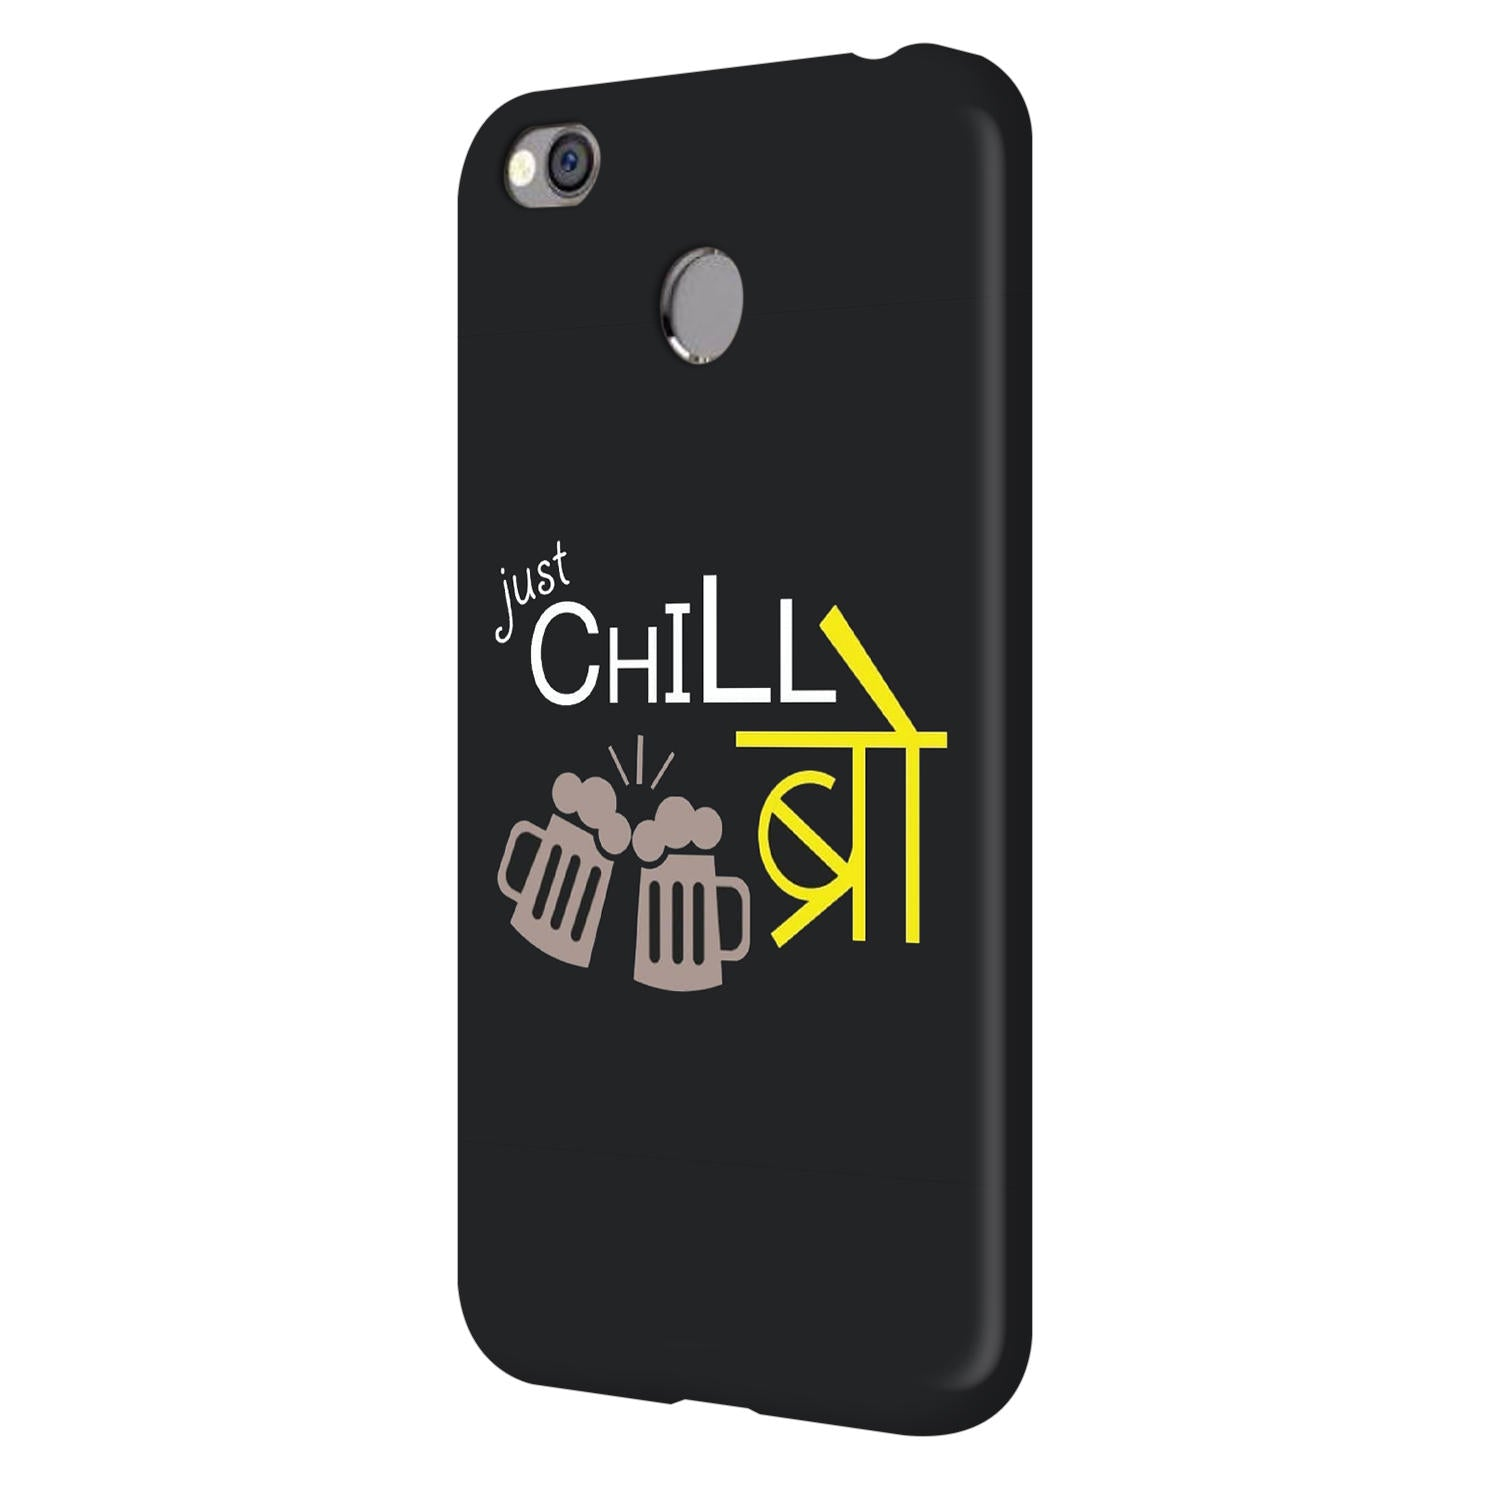 Just Chill Bro Typography Vivo V7 Plus Mobile Cover Case - MADANYU